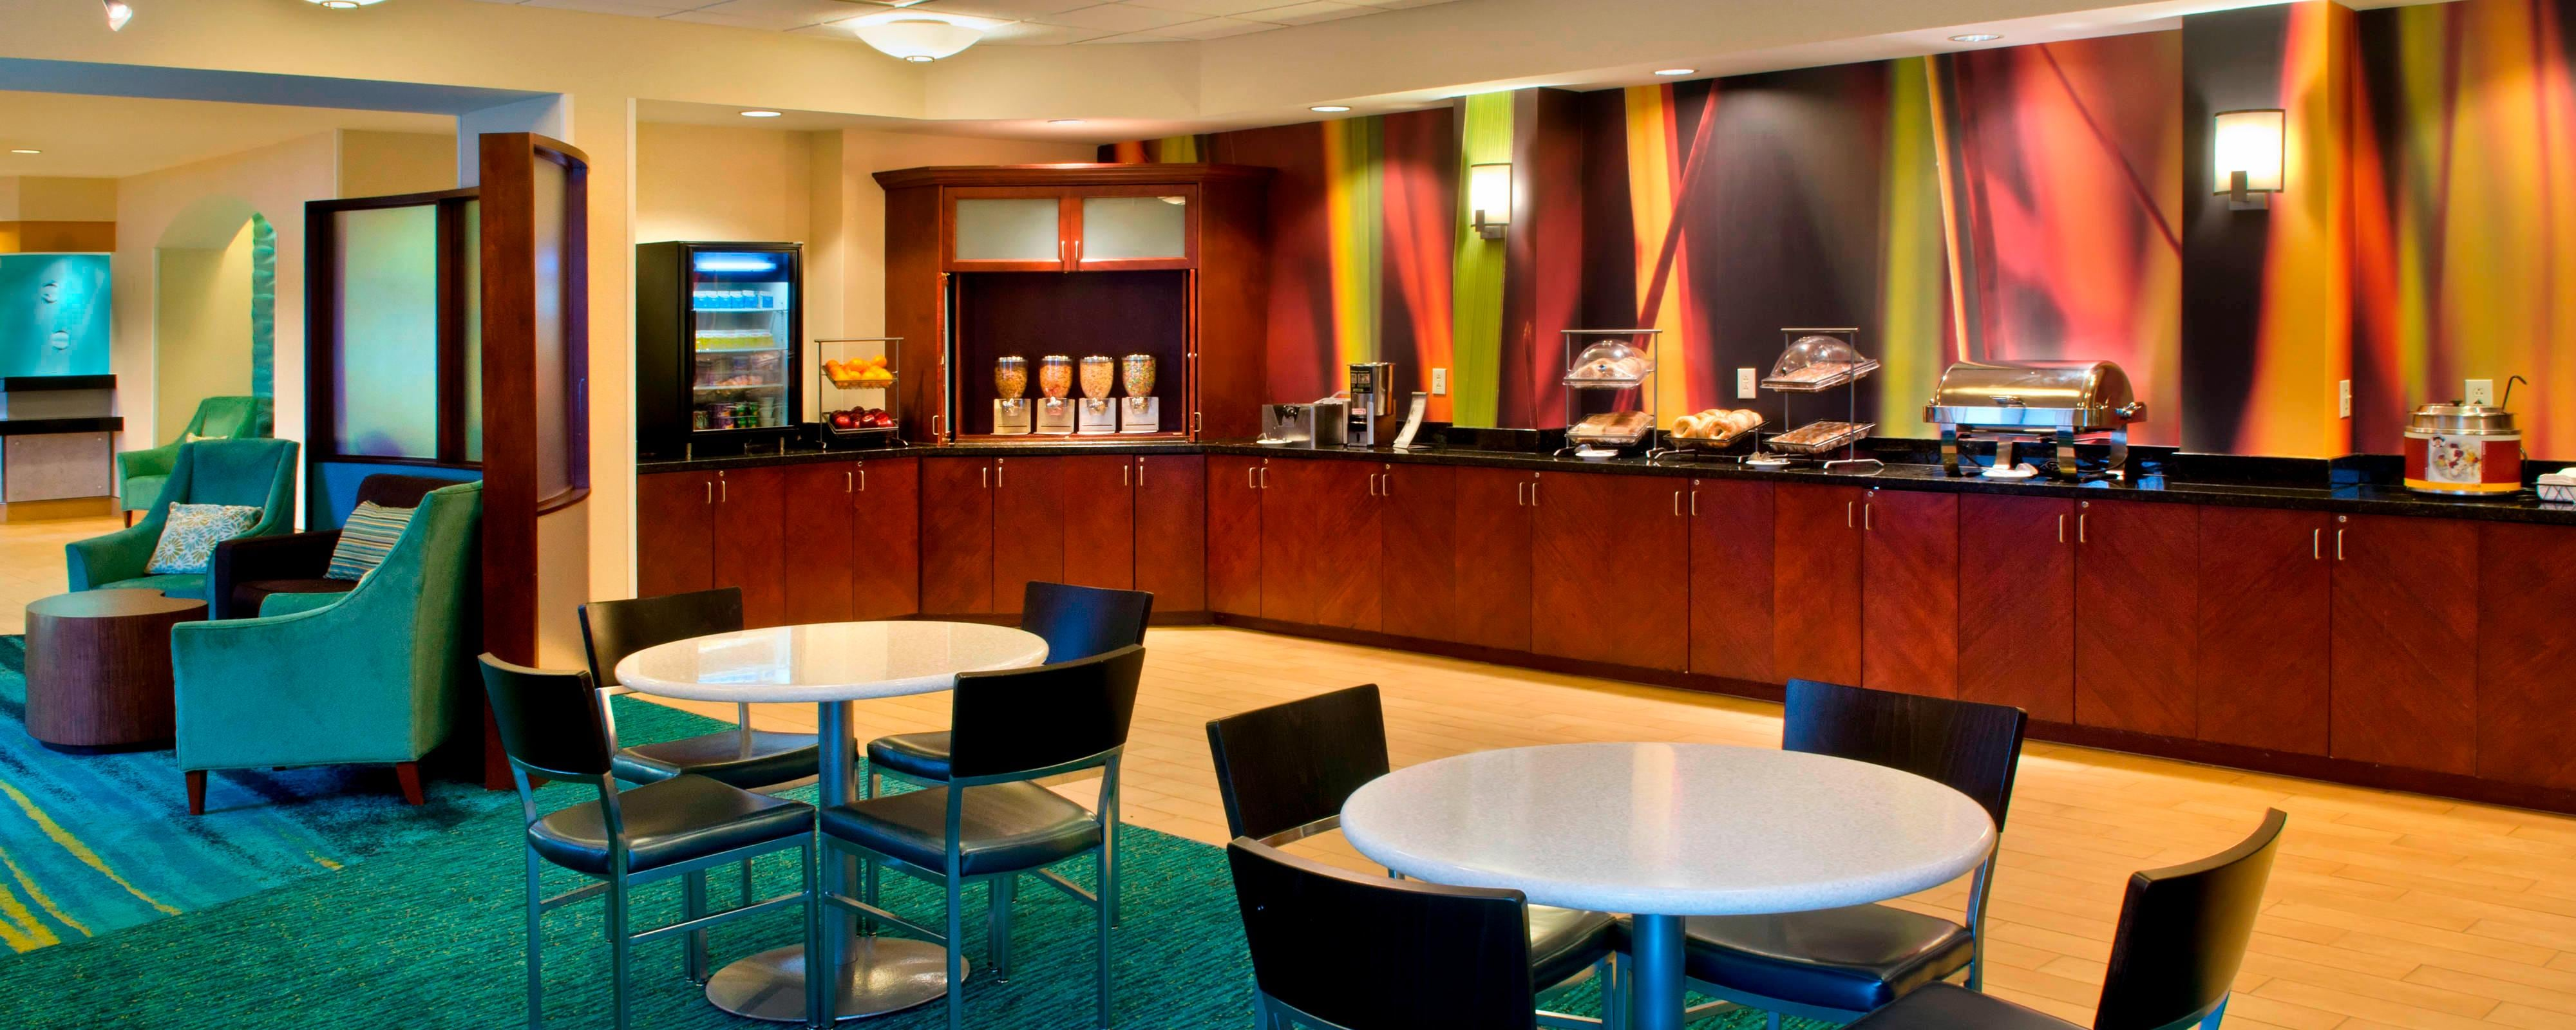 Fine Hotel Free Breakfast Plymouth Meeting Springhill Suites Download Free Architecture Designs Rallybritishbridgeorg